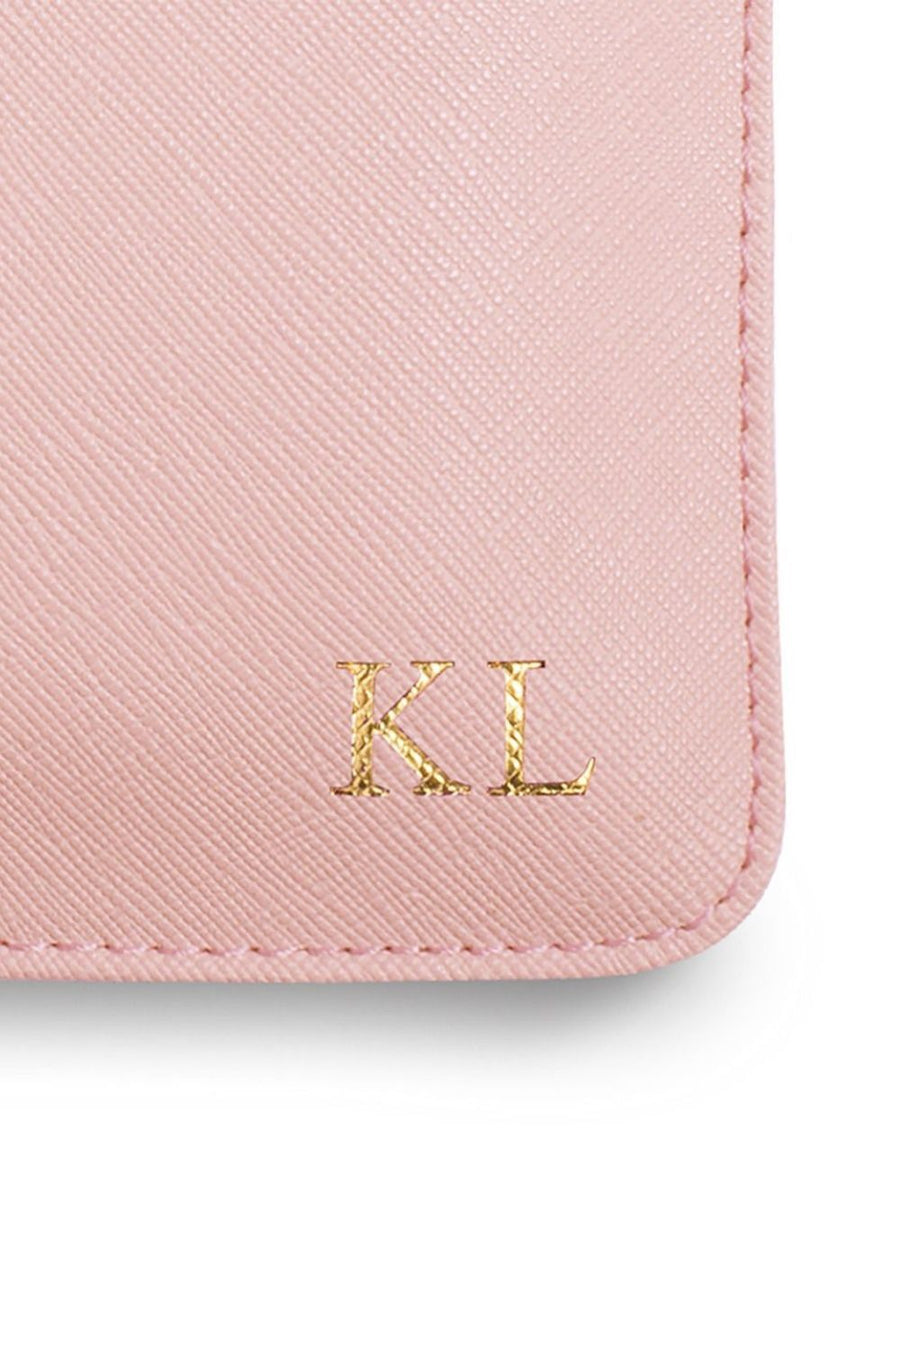 Katie Loxton 'Team Bride' Perfect Pouch